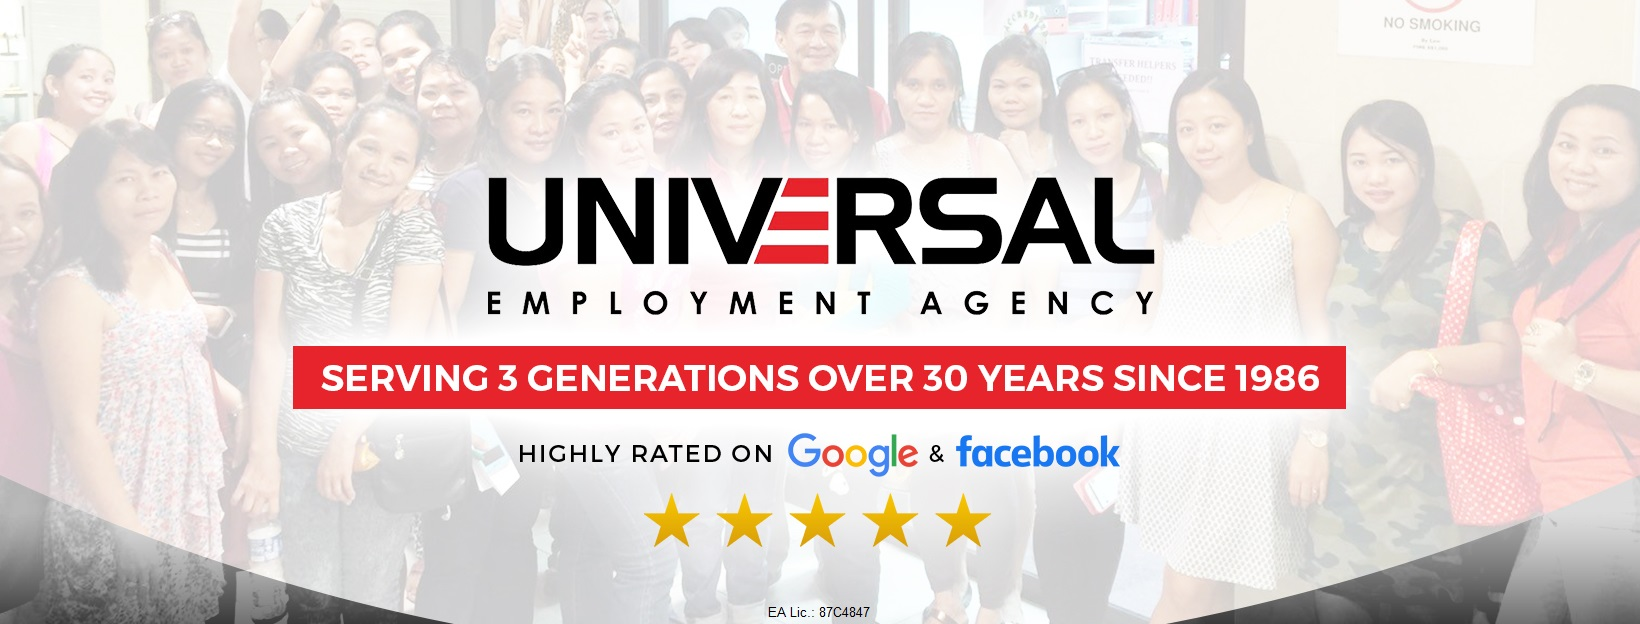 Maid Agency in Singapore. universal employment